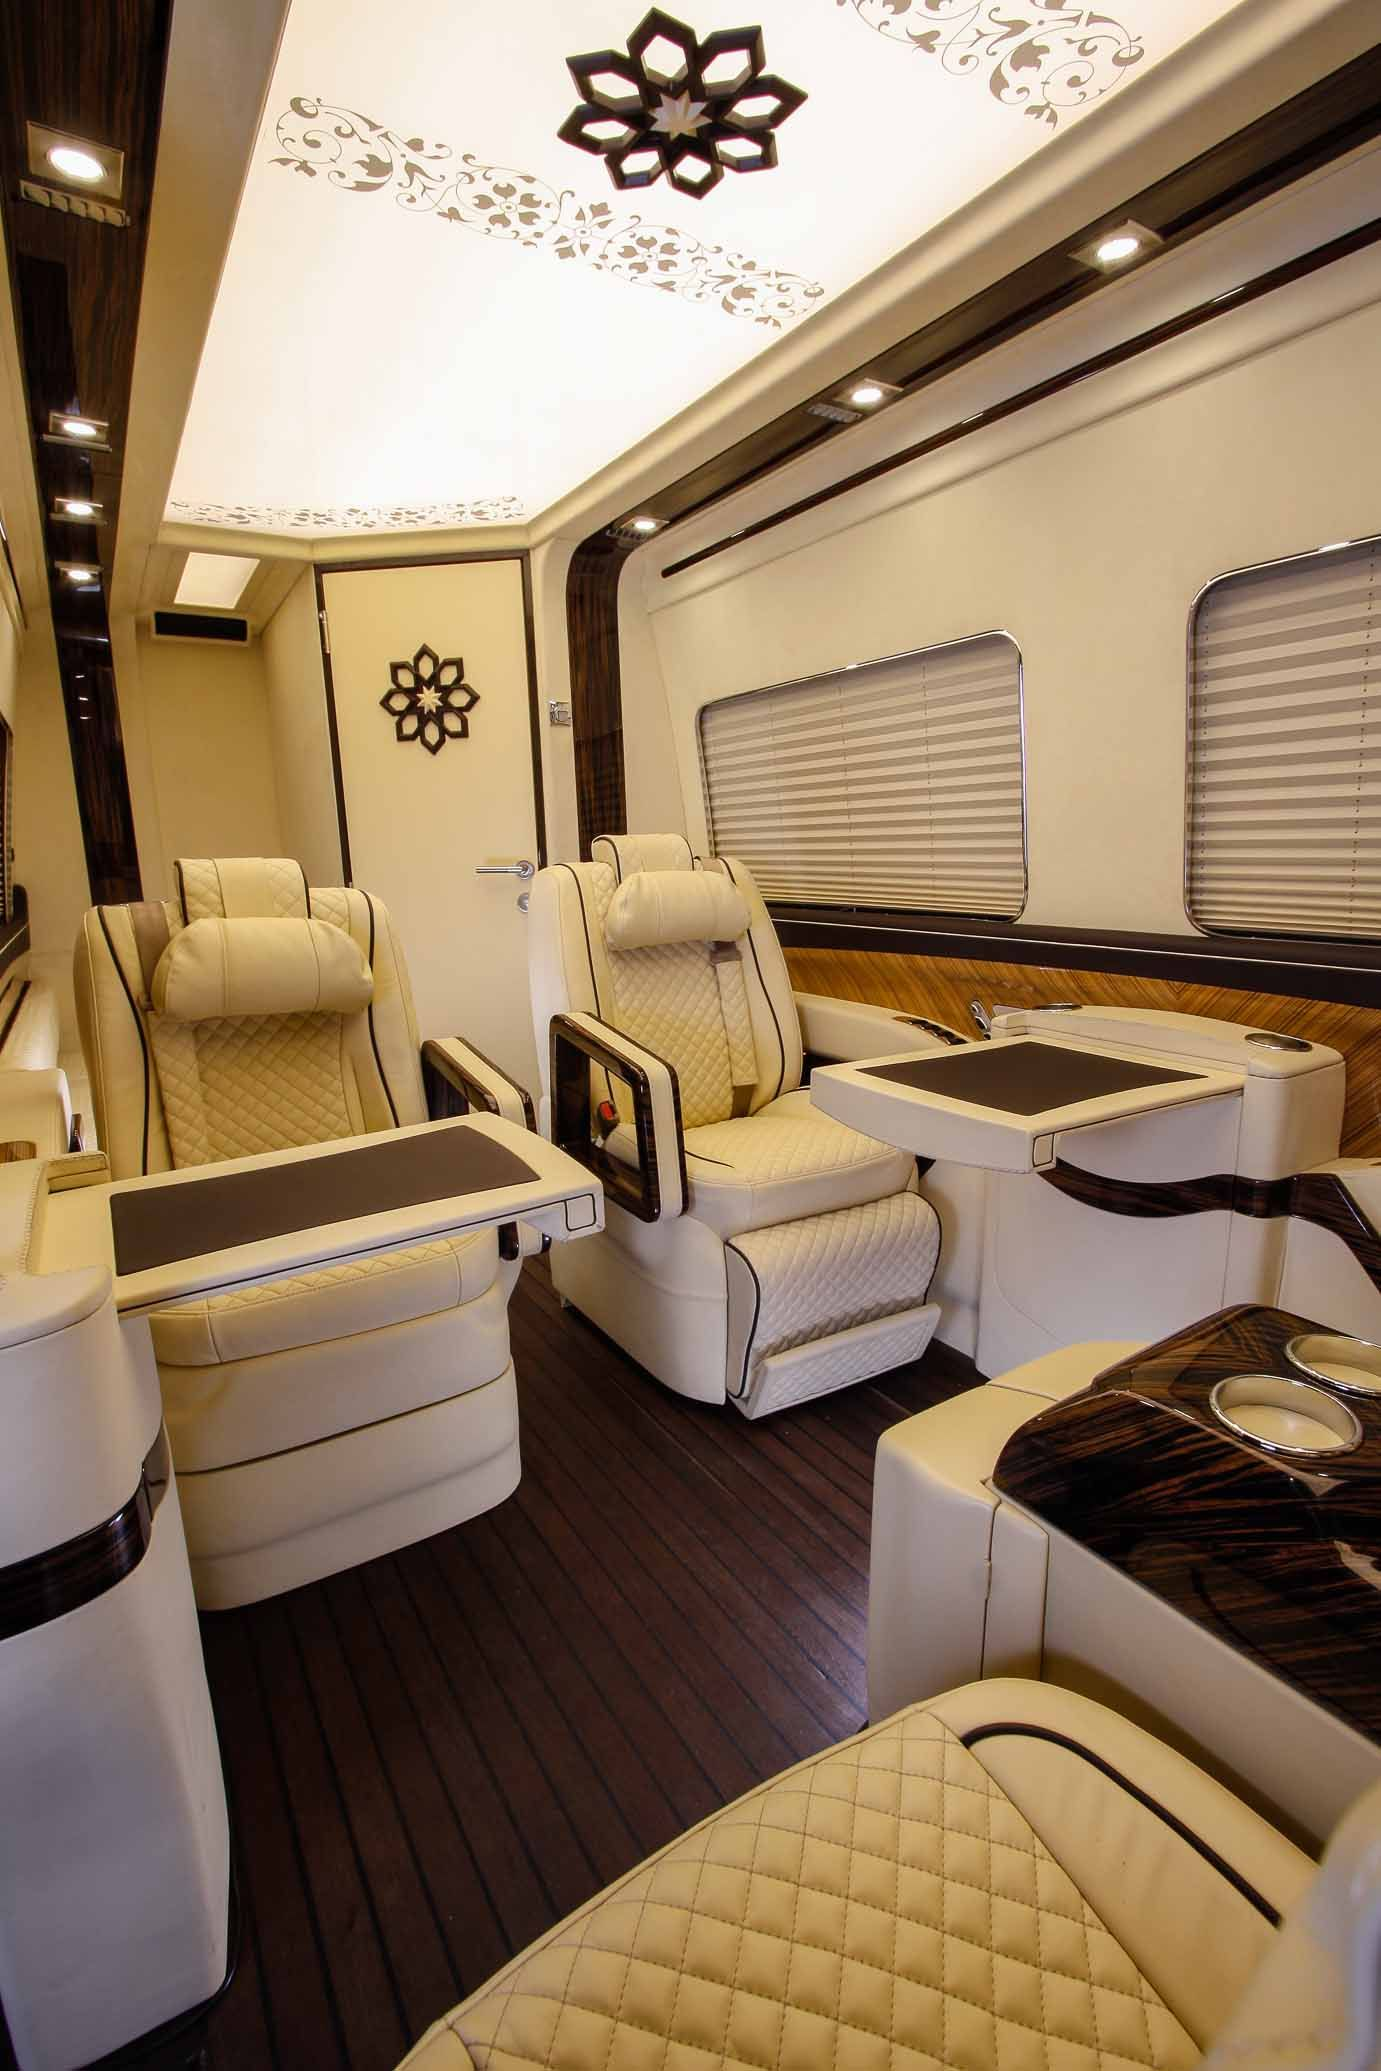 Luxury Vip Van By Klassen Manufacture Fine Leather Stitched In